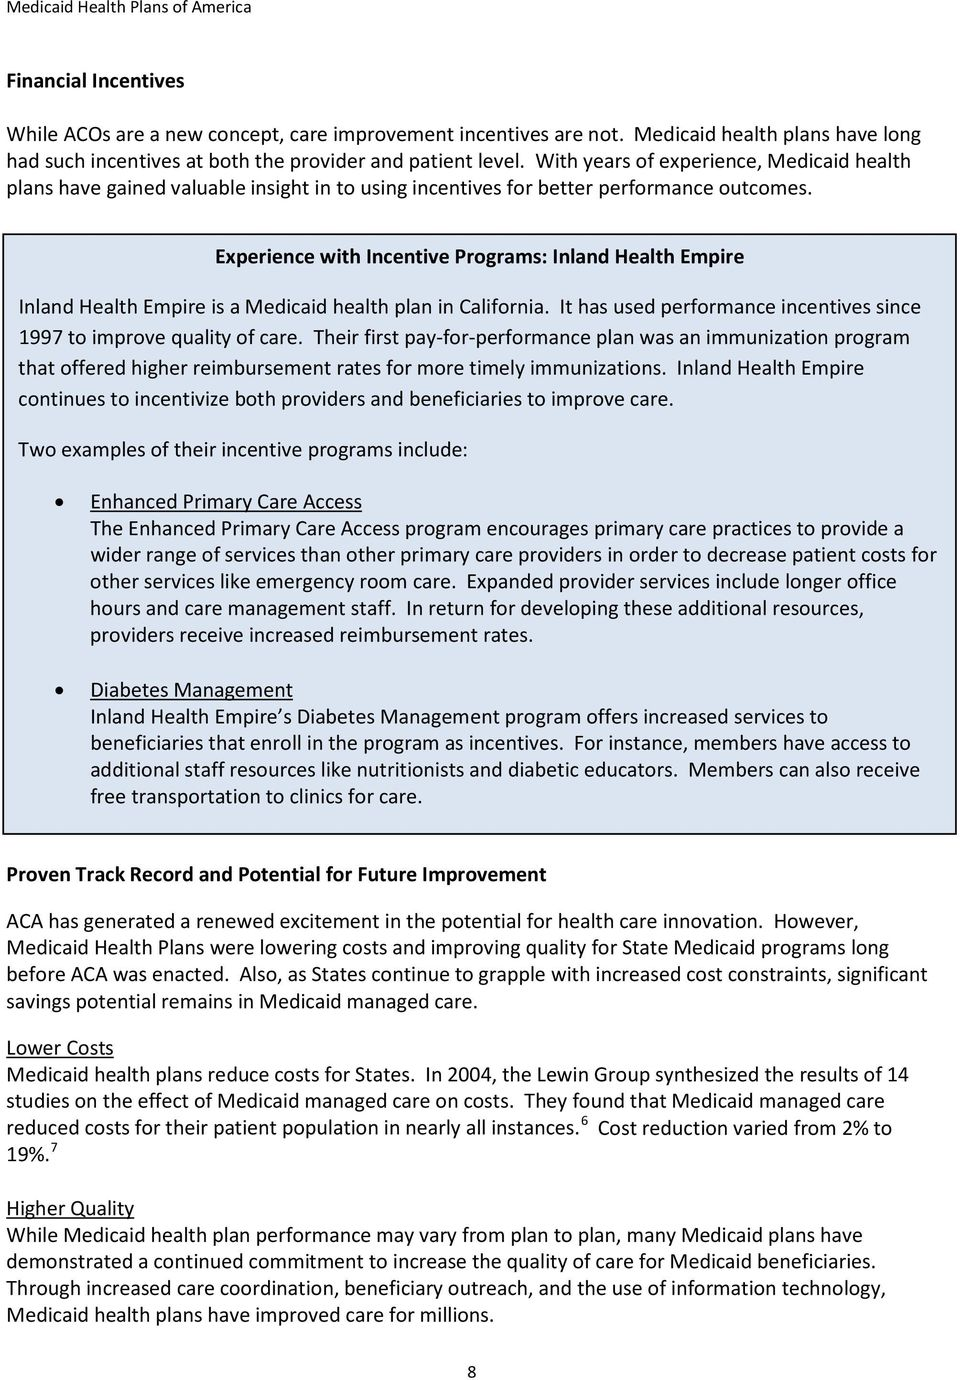 Experience with Incentive Programs: Inland Health Empire Inland Health Empire is a Medicaid health plan in California. It has used performance incentives since 1997 to improve quality of care.